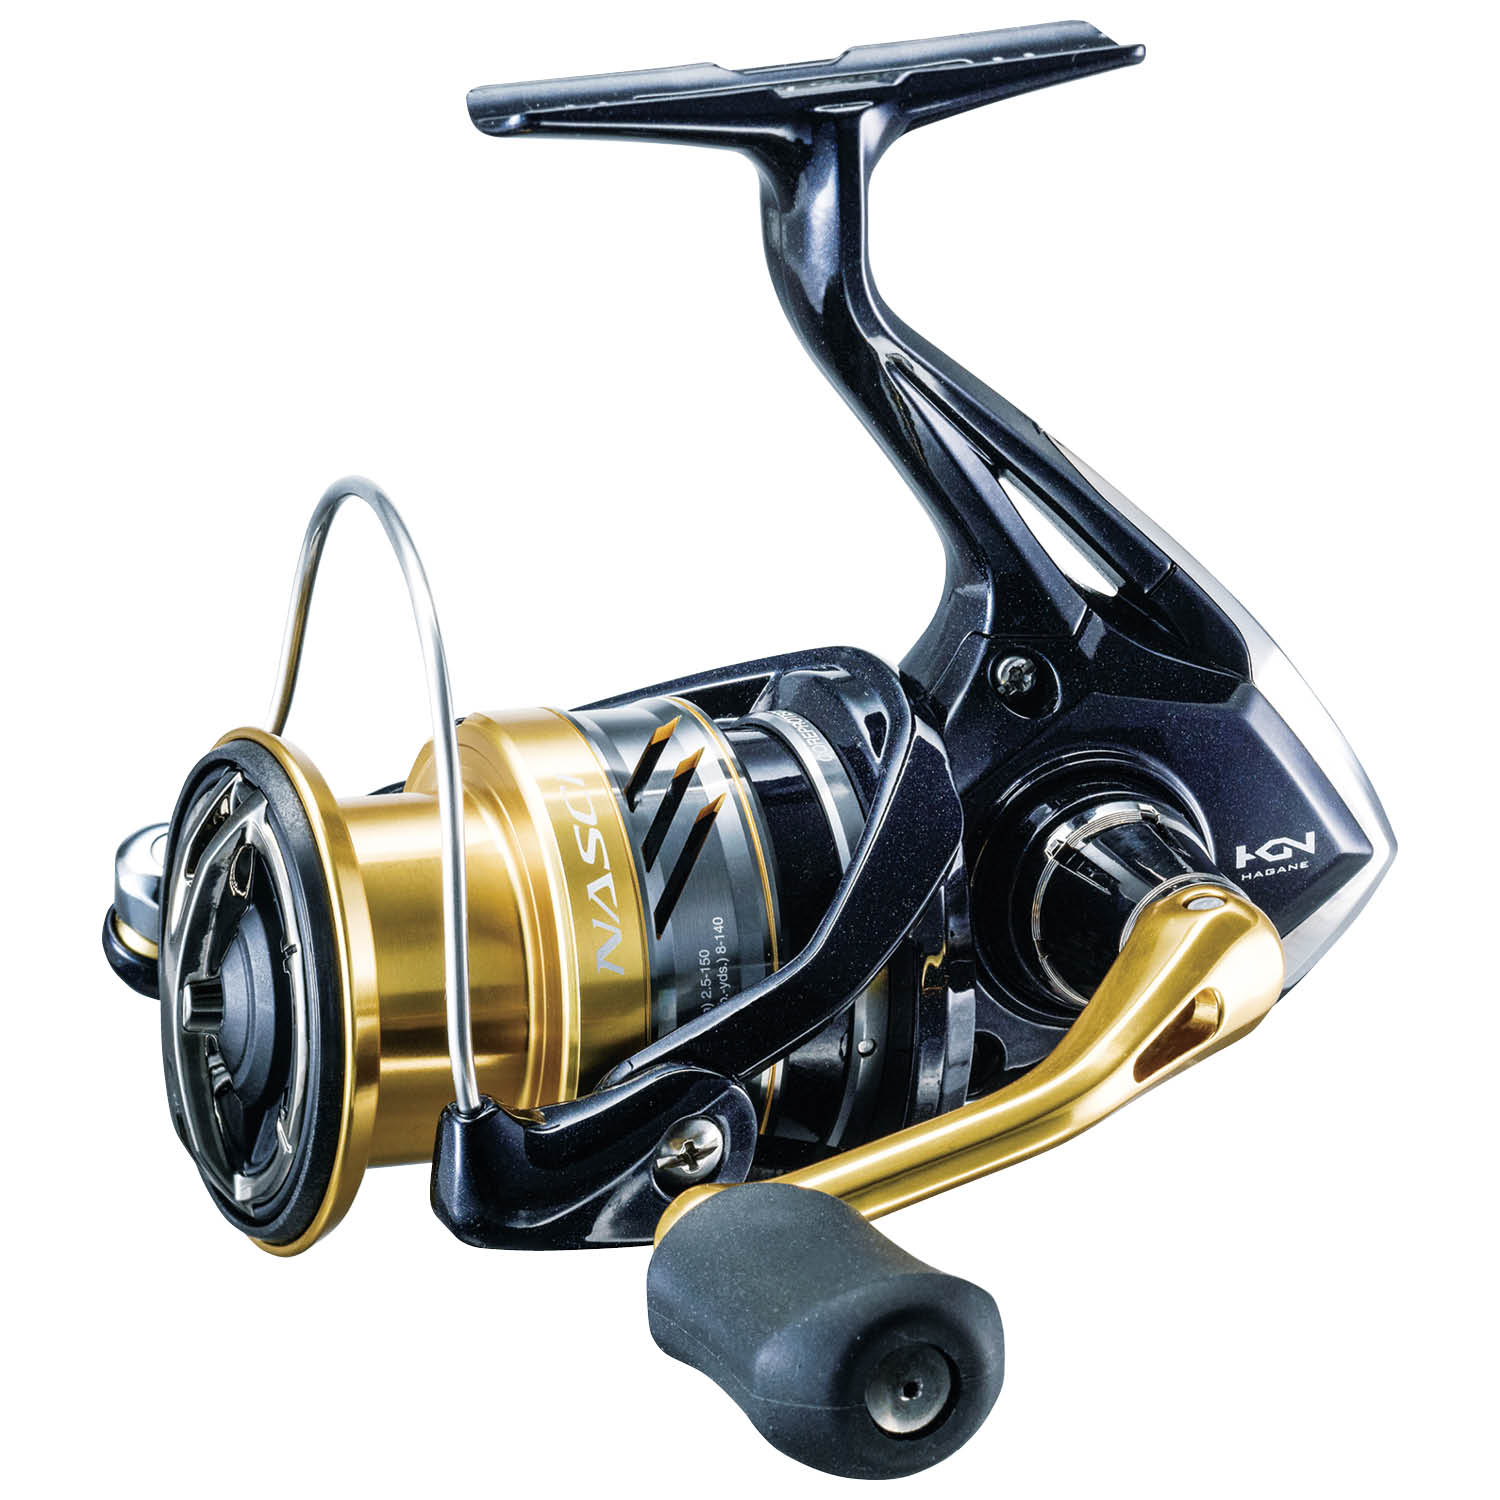 1RB 5.6:1 NAS500FB 4BB Front Drag NEW SHIMANO Nasci 500 Spinning Reel